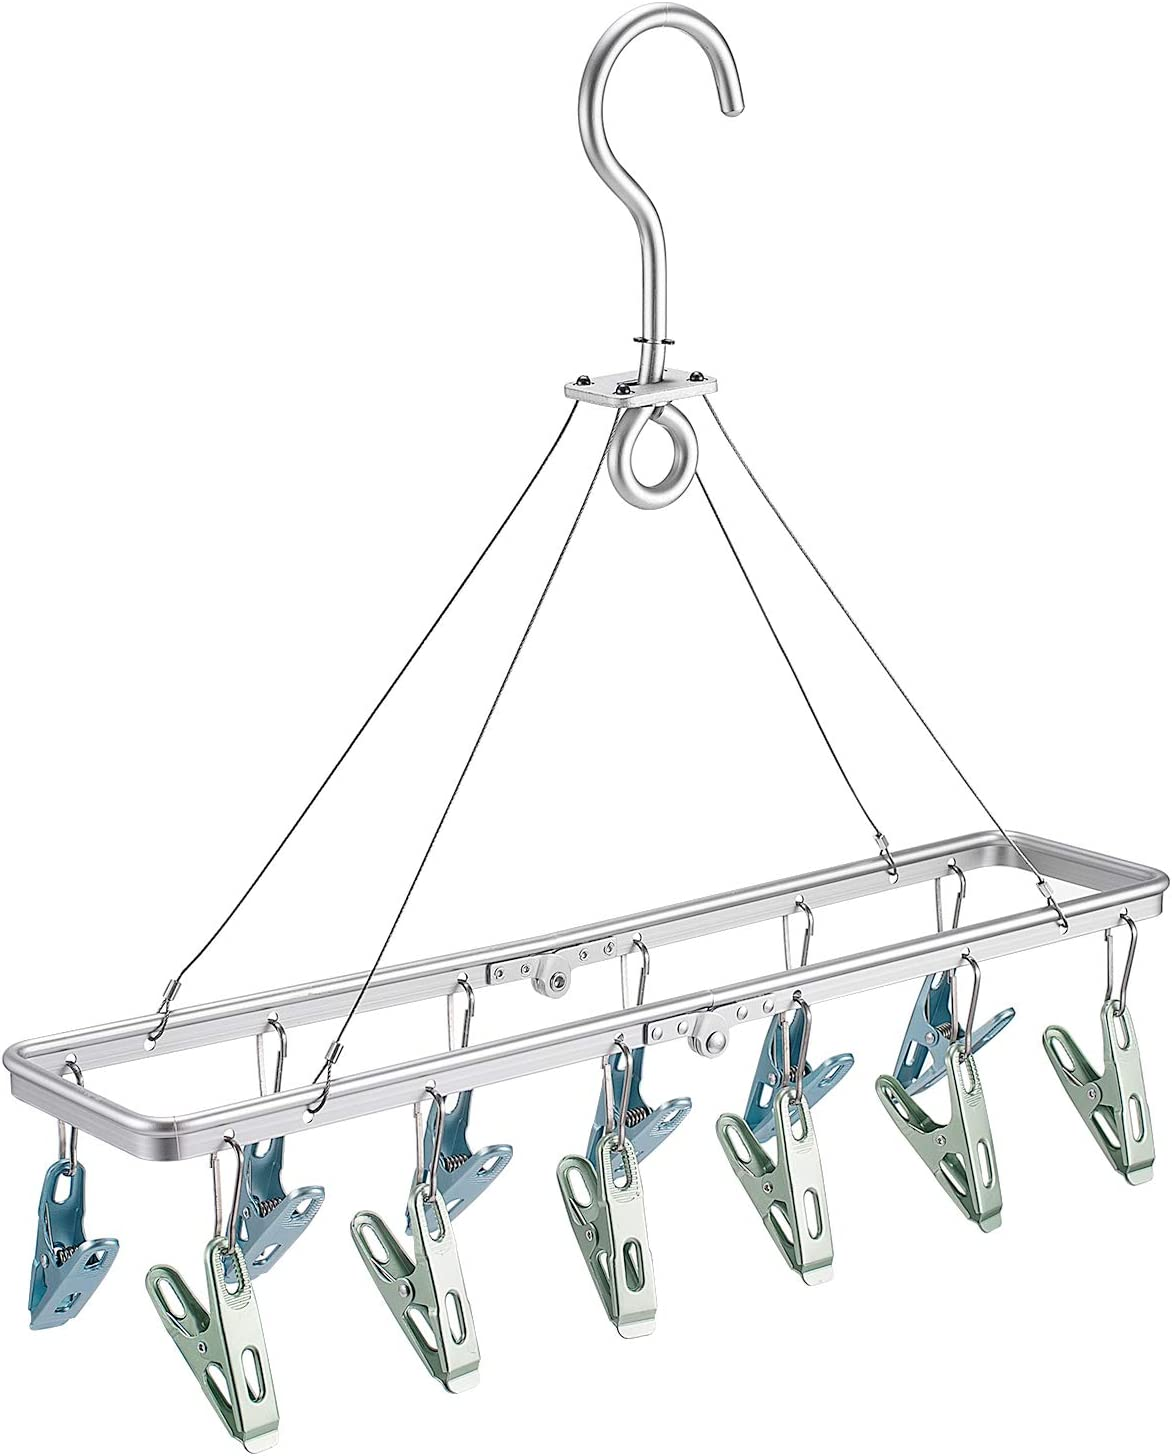 Senbowe Foldable Clip and Drip Hanger, Clothes Hanging Drying Rack Sock Hanger Underwear Hanger with 12 Clips, Hanger for Towels, Bras, Baby Clothes, Gloves, Aluminium Alloy Laundry Hanging Air Dryer